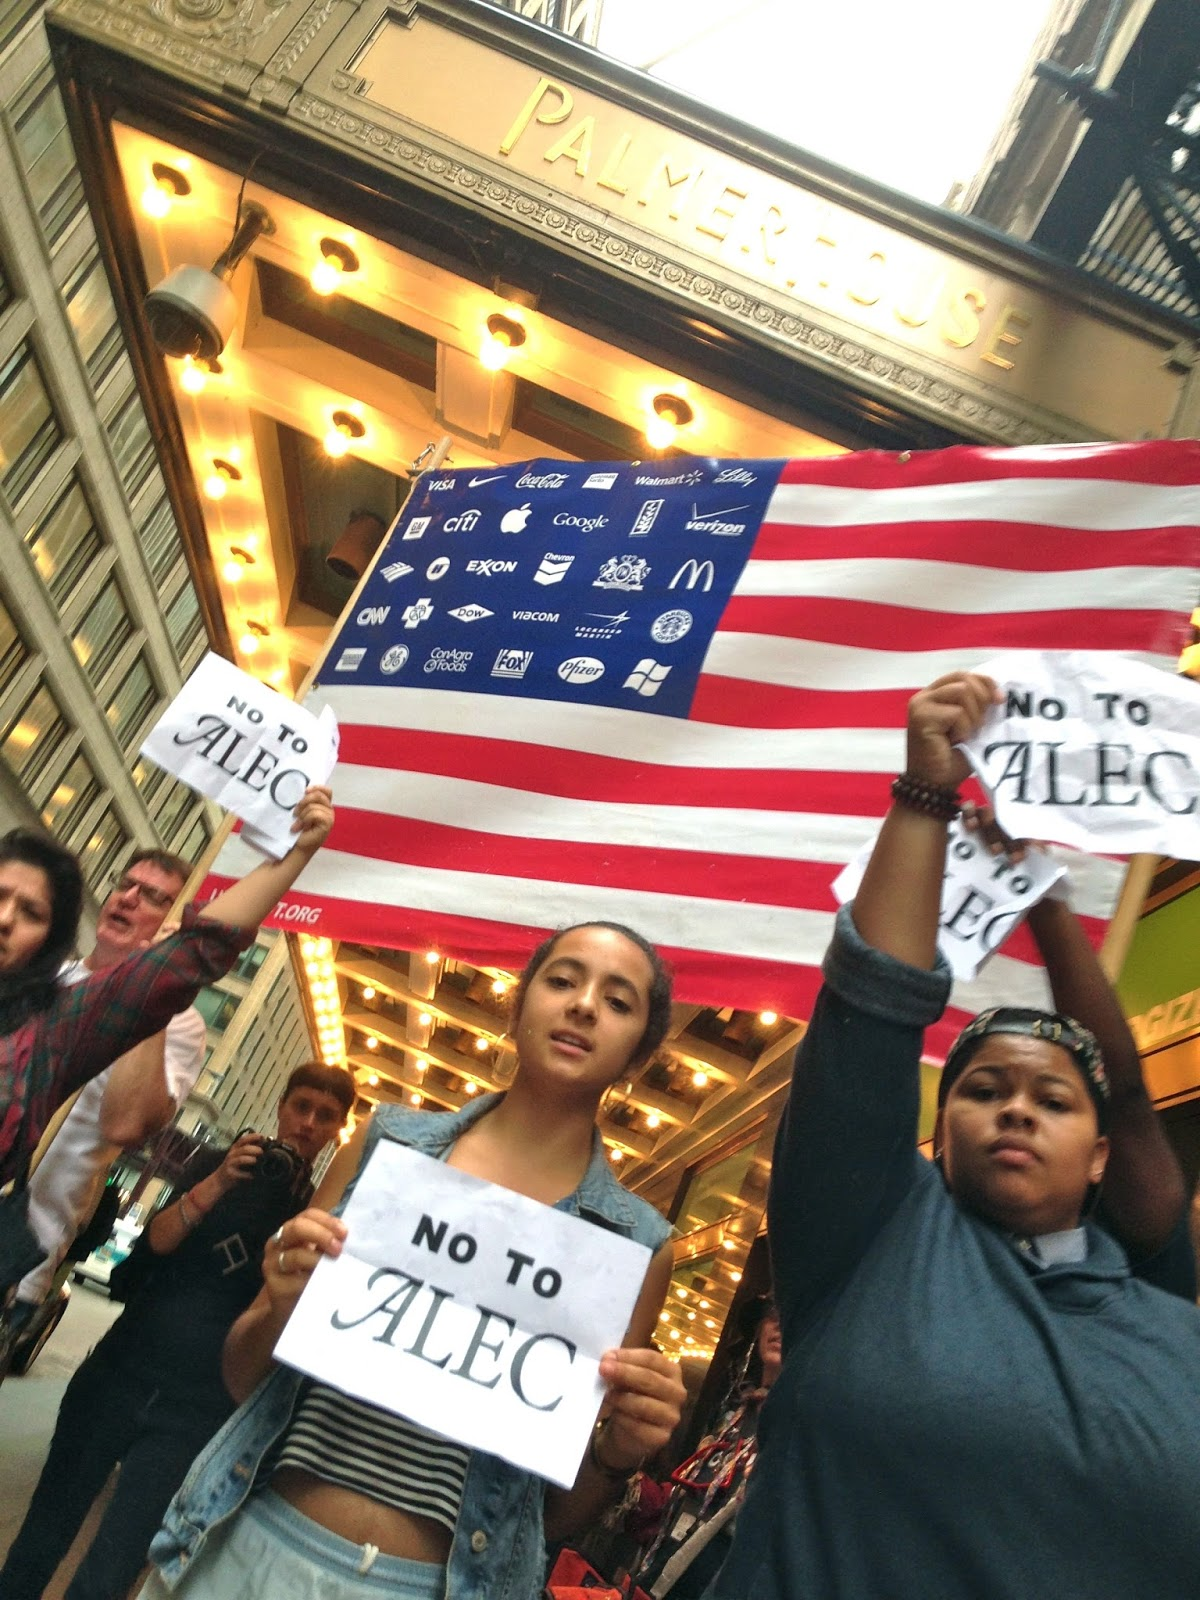 Students, Teachers, Clergy, Workers Opened A Week Of ALEC Protests   Photo  @phillipcantor